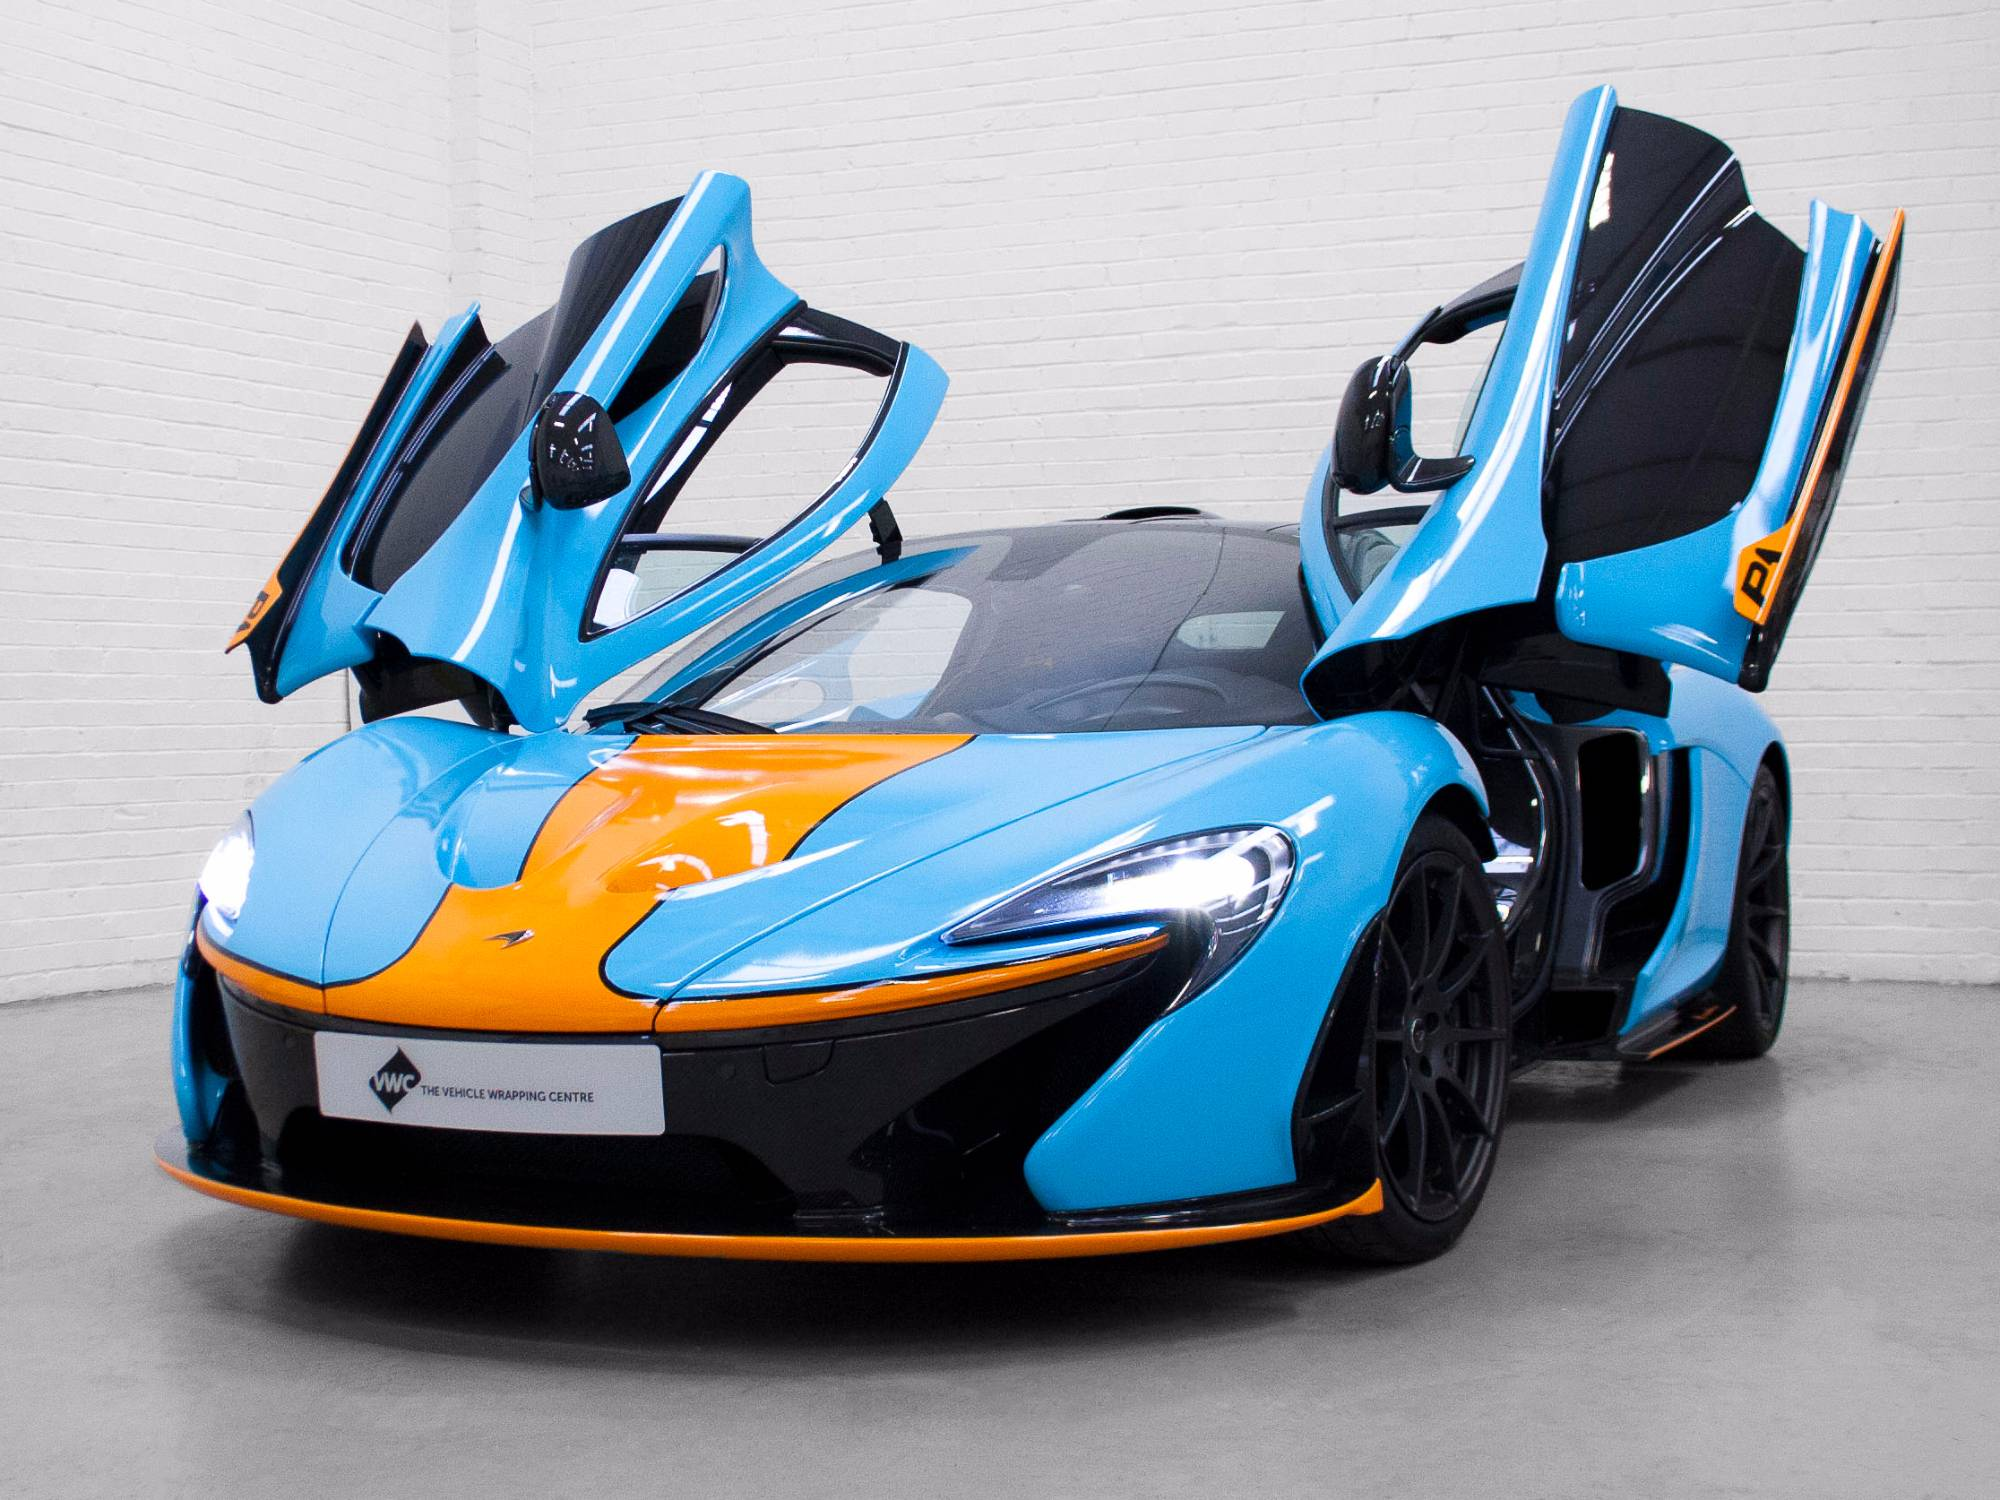 Mclaren P1 Gulf Racing Livery Personal Vehicle Wrap Project